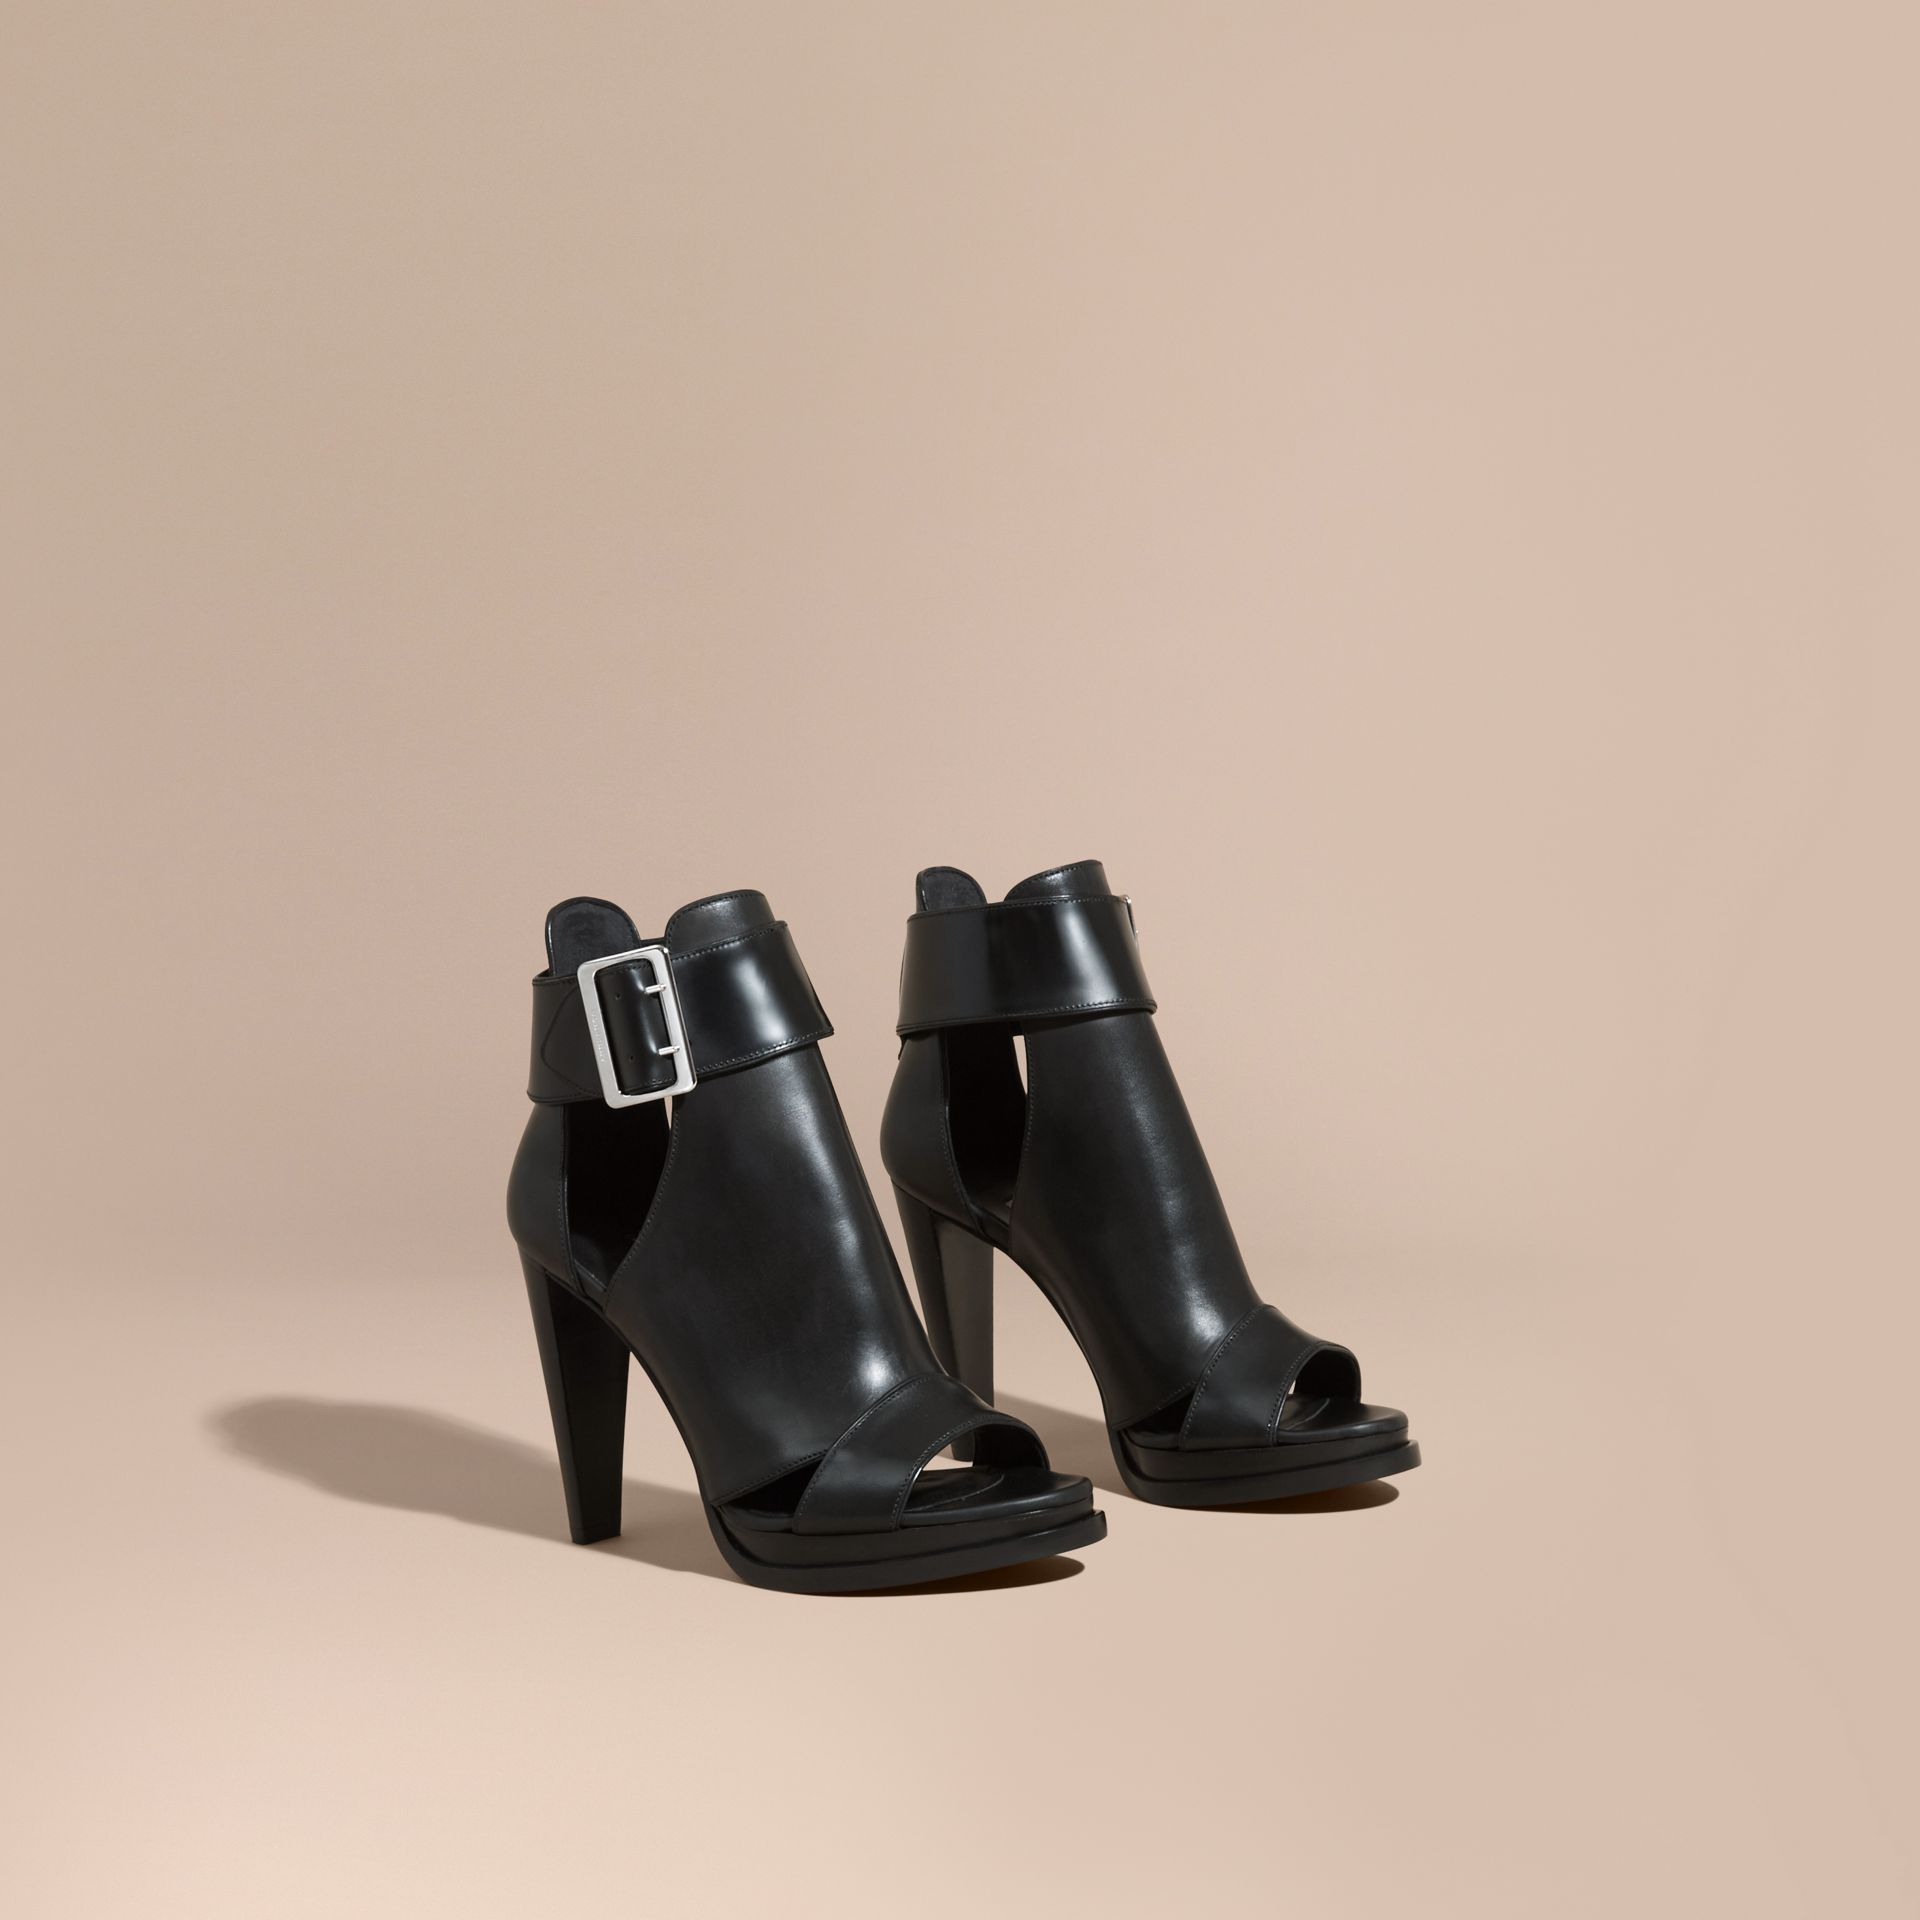 Black Buckle Detail Peep-toe Platform Ankle Boots - gallery image 1